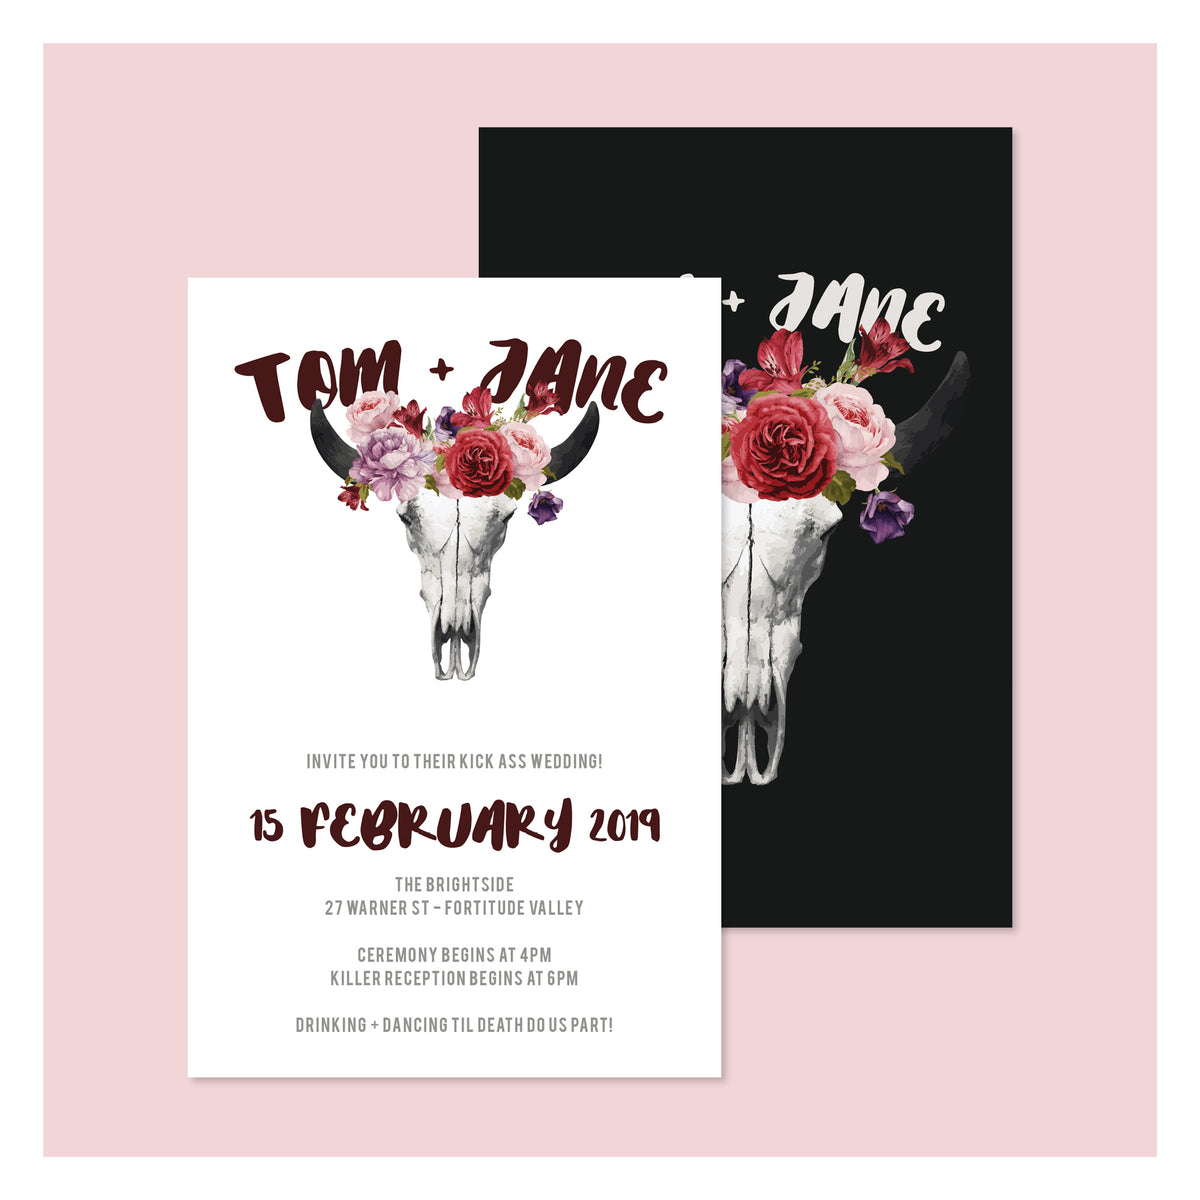 Til Death • Wedding Invitation